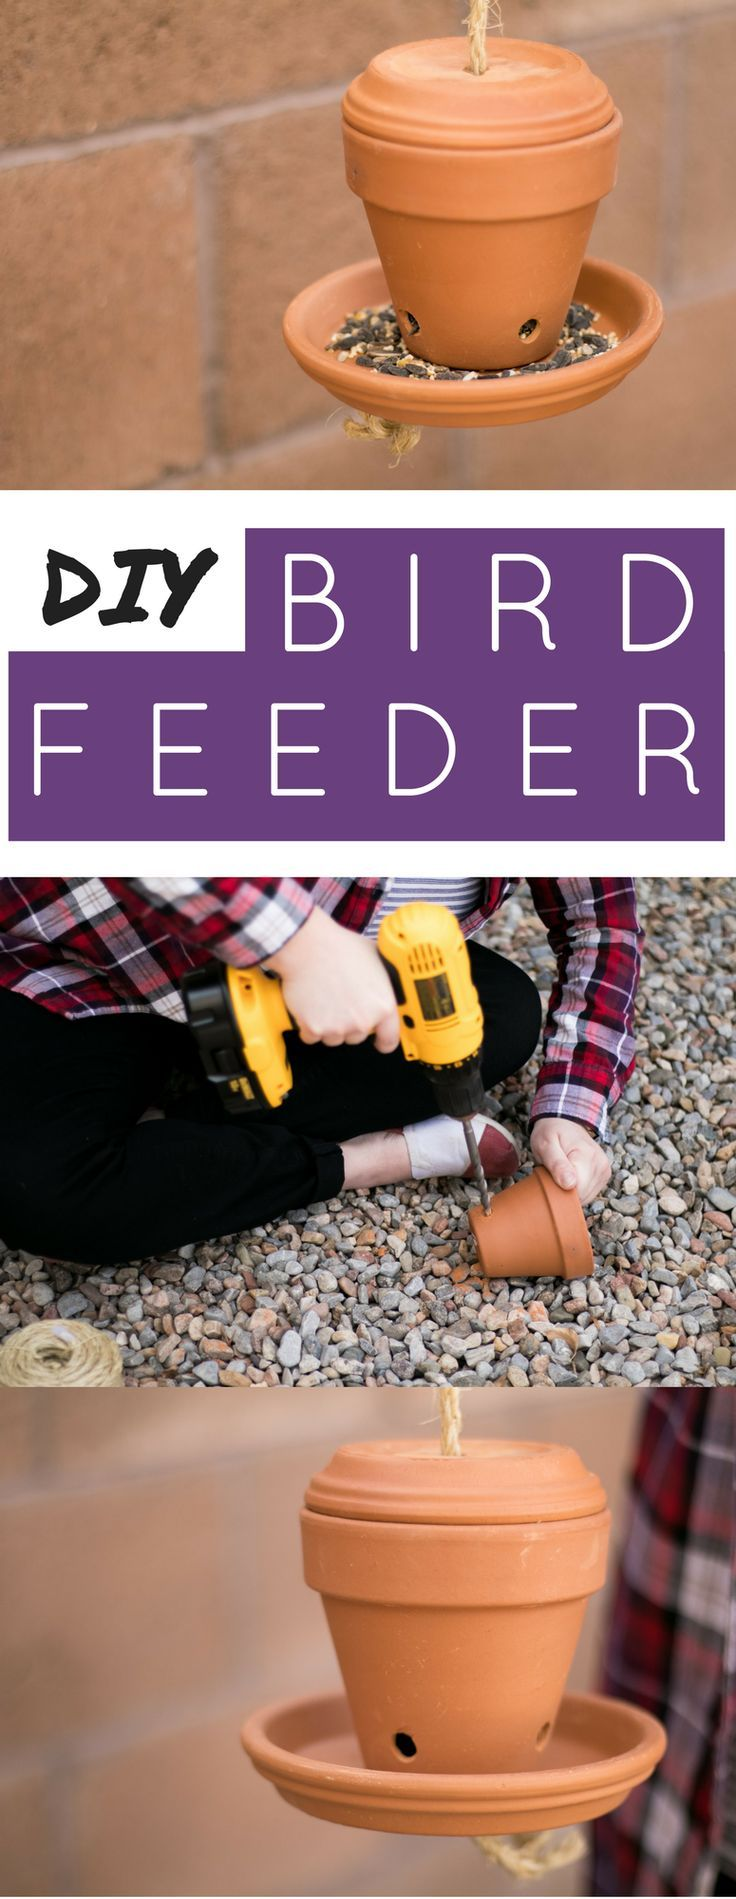 Pl plastic bottle bird feeder instructions - A Super Simple Diy Flower Pot Bird Feeder Step By Step Instructions To Build A Bird Feeder In No Time At All Perfect Feeder For Songbirds